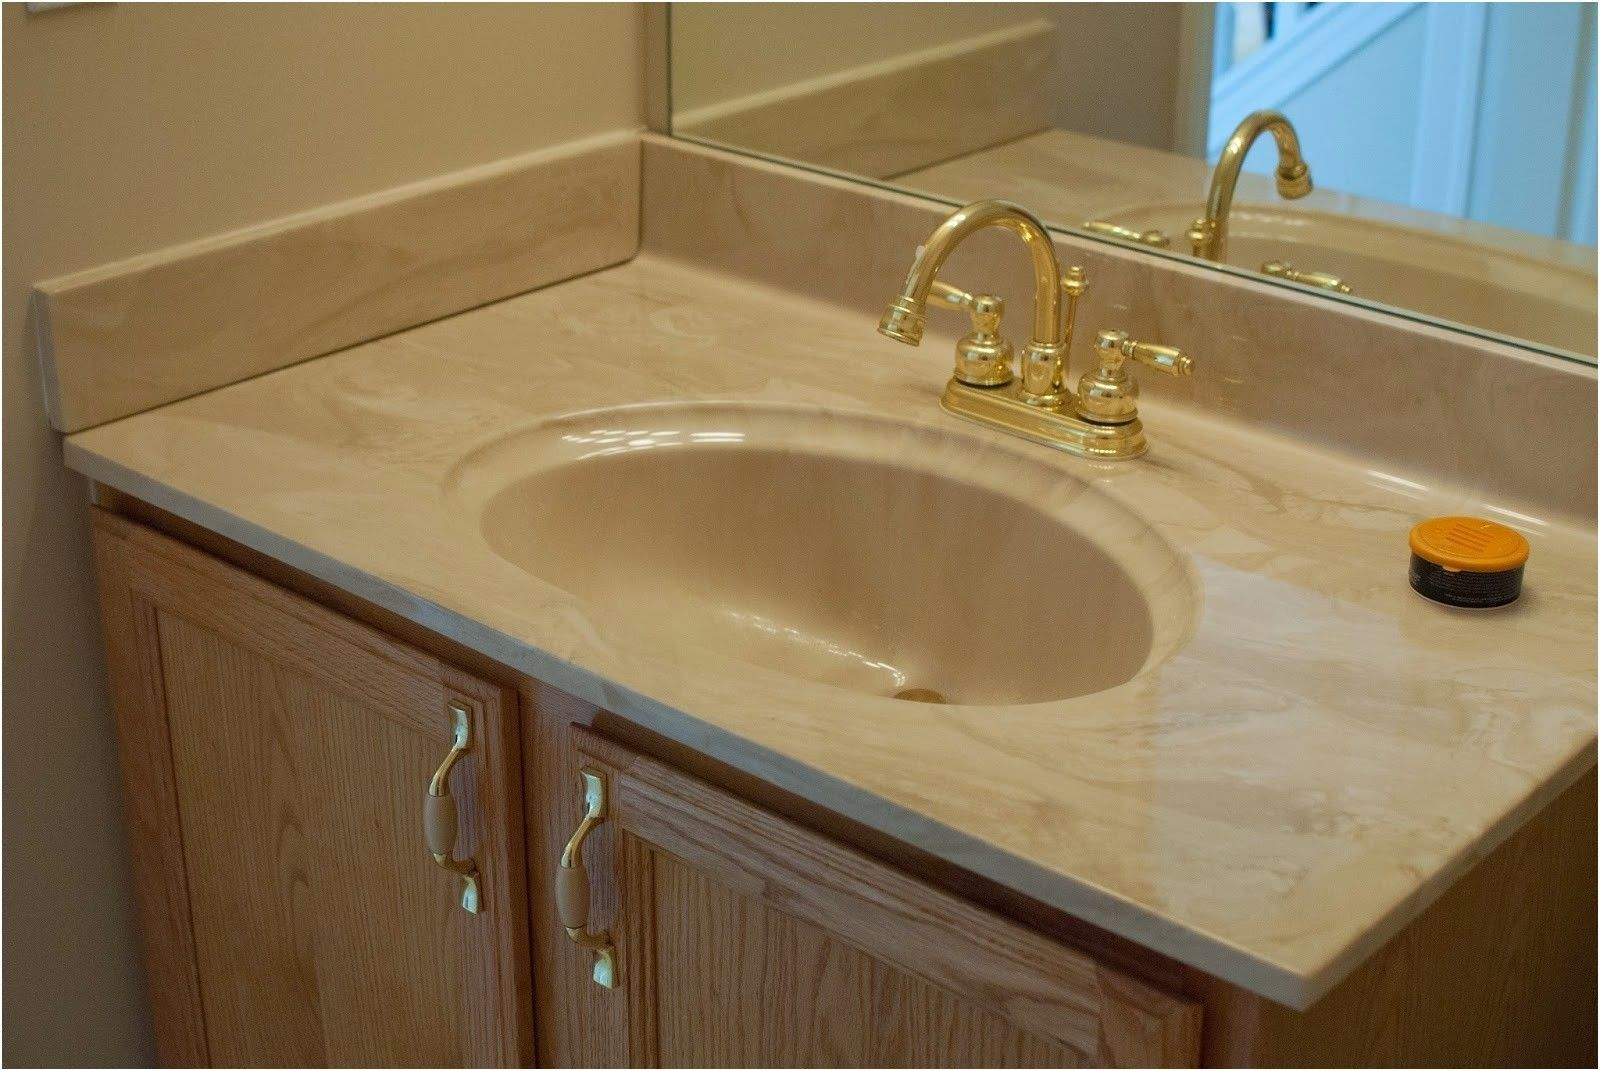 Bathroom Countertop And Sink One Piece Most Effective Ways To Overcome Bathroom Countertop A Counter Top Sink Bathroom Bathroom Countertops Sink Countertop